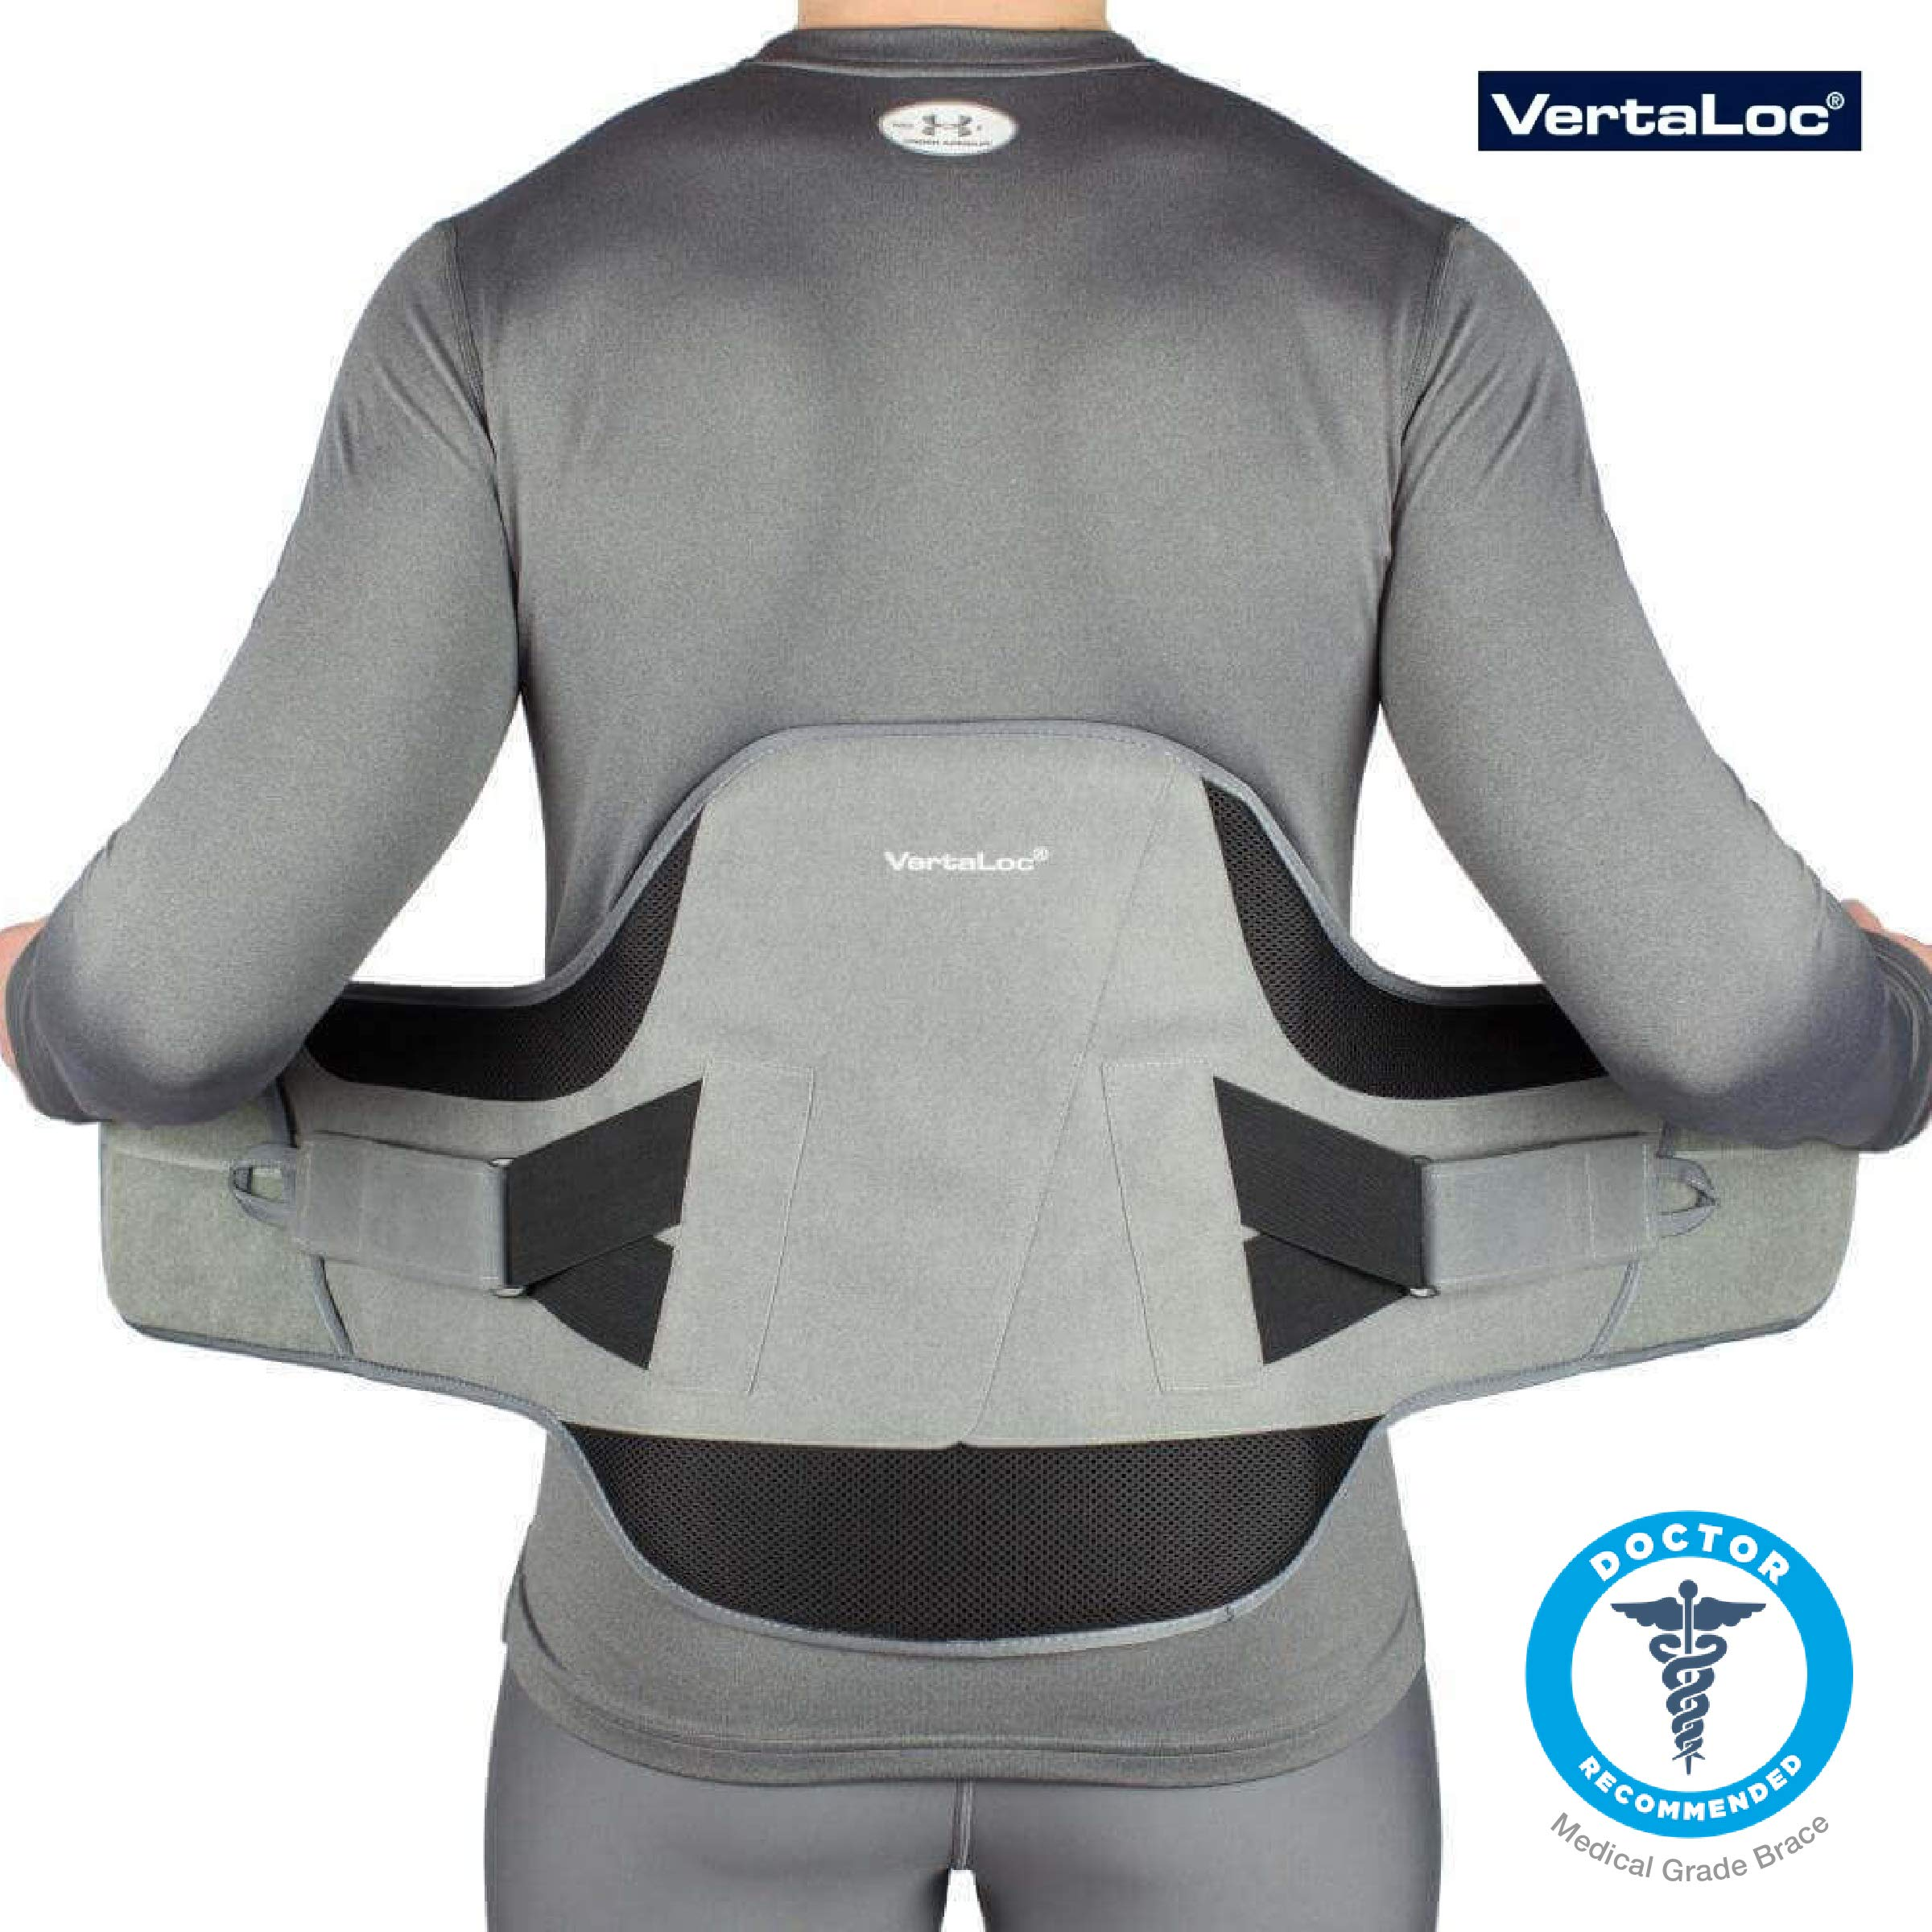 VertaLoc Flex FIT Medical Grade Back Brace and Support for Lower Back Pain - Extra Large by VERTALOC, INC. (Image #1)